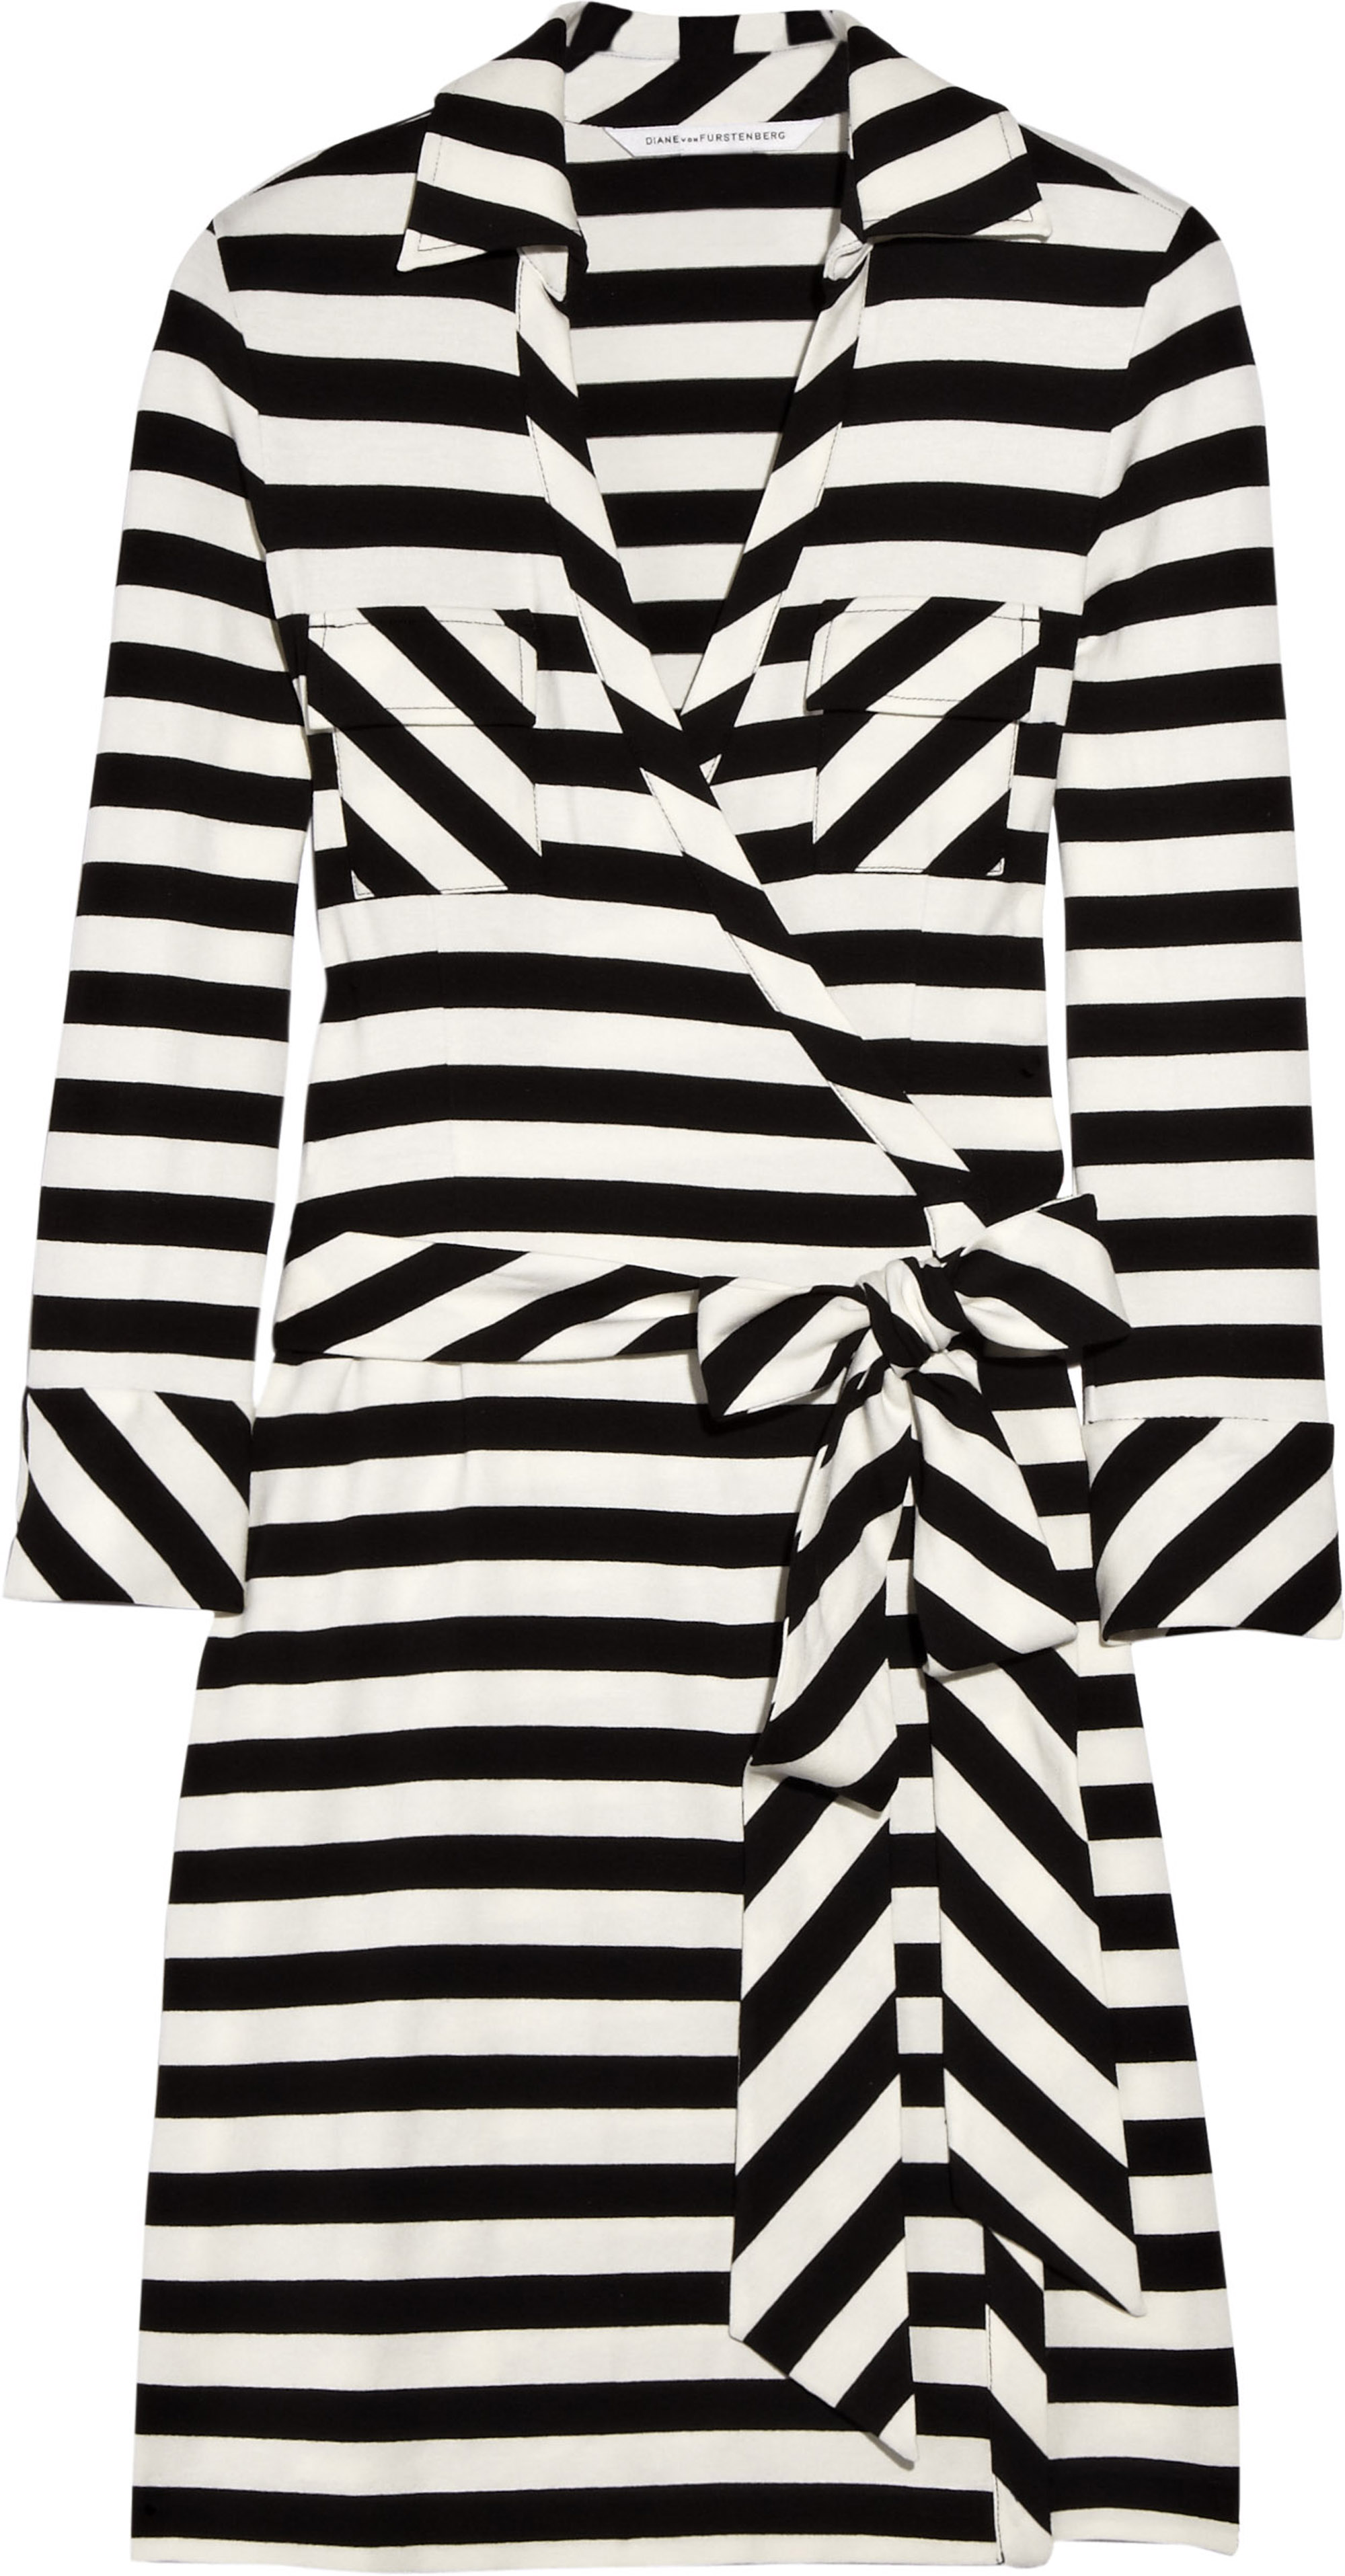 Net a Porter Jersey mini dress